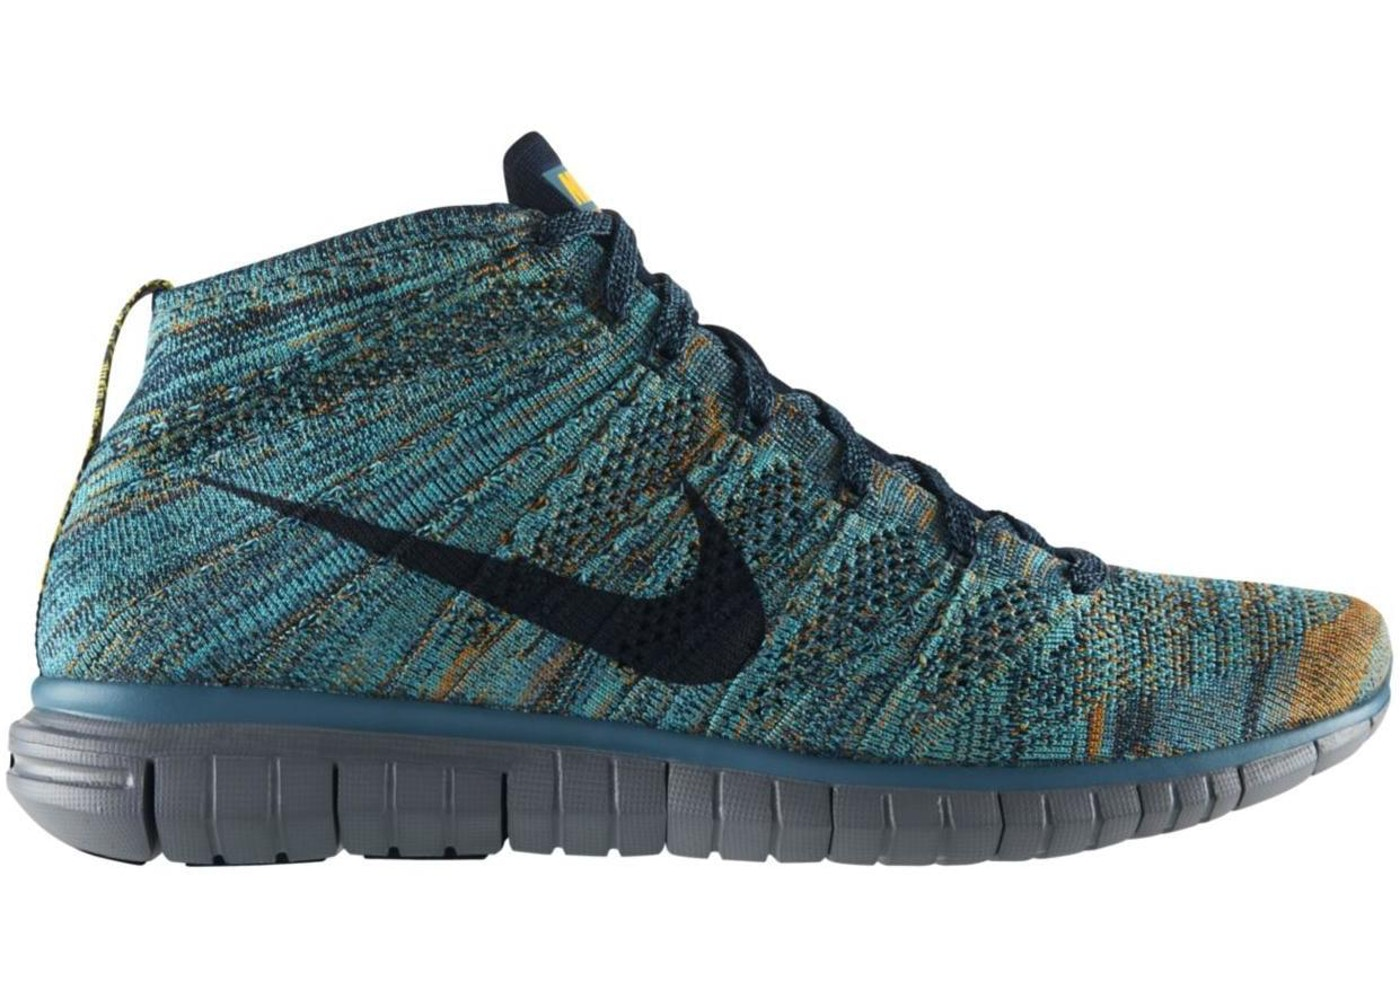 new style b9cc9 aecad Sell. or Ask. Size  9.5. View All Bids. Nike Free Flyknit Chukka ...